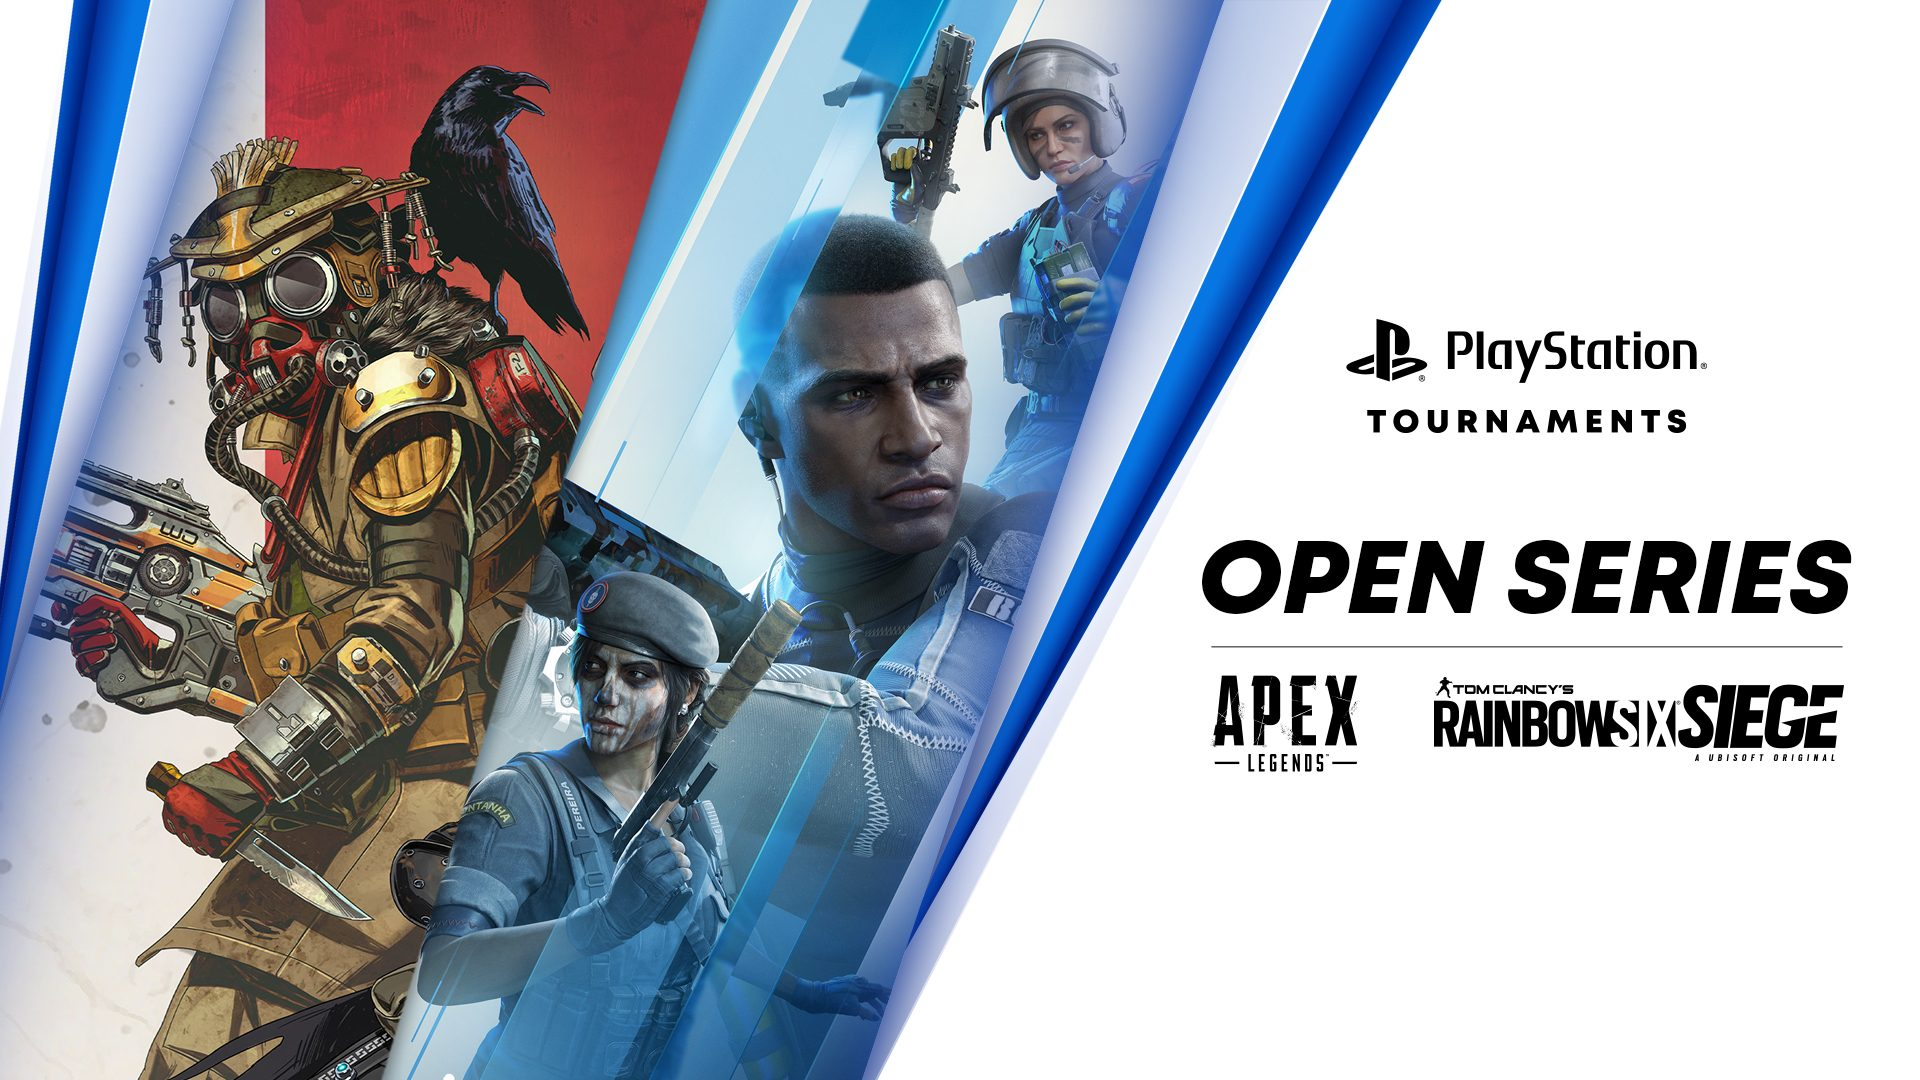 apex-legends-and-rainbow-six-siege-join-the-playstation-tournaments:-open-series